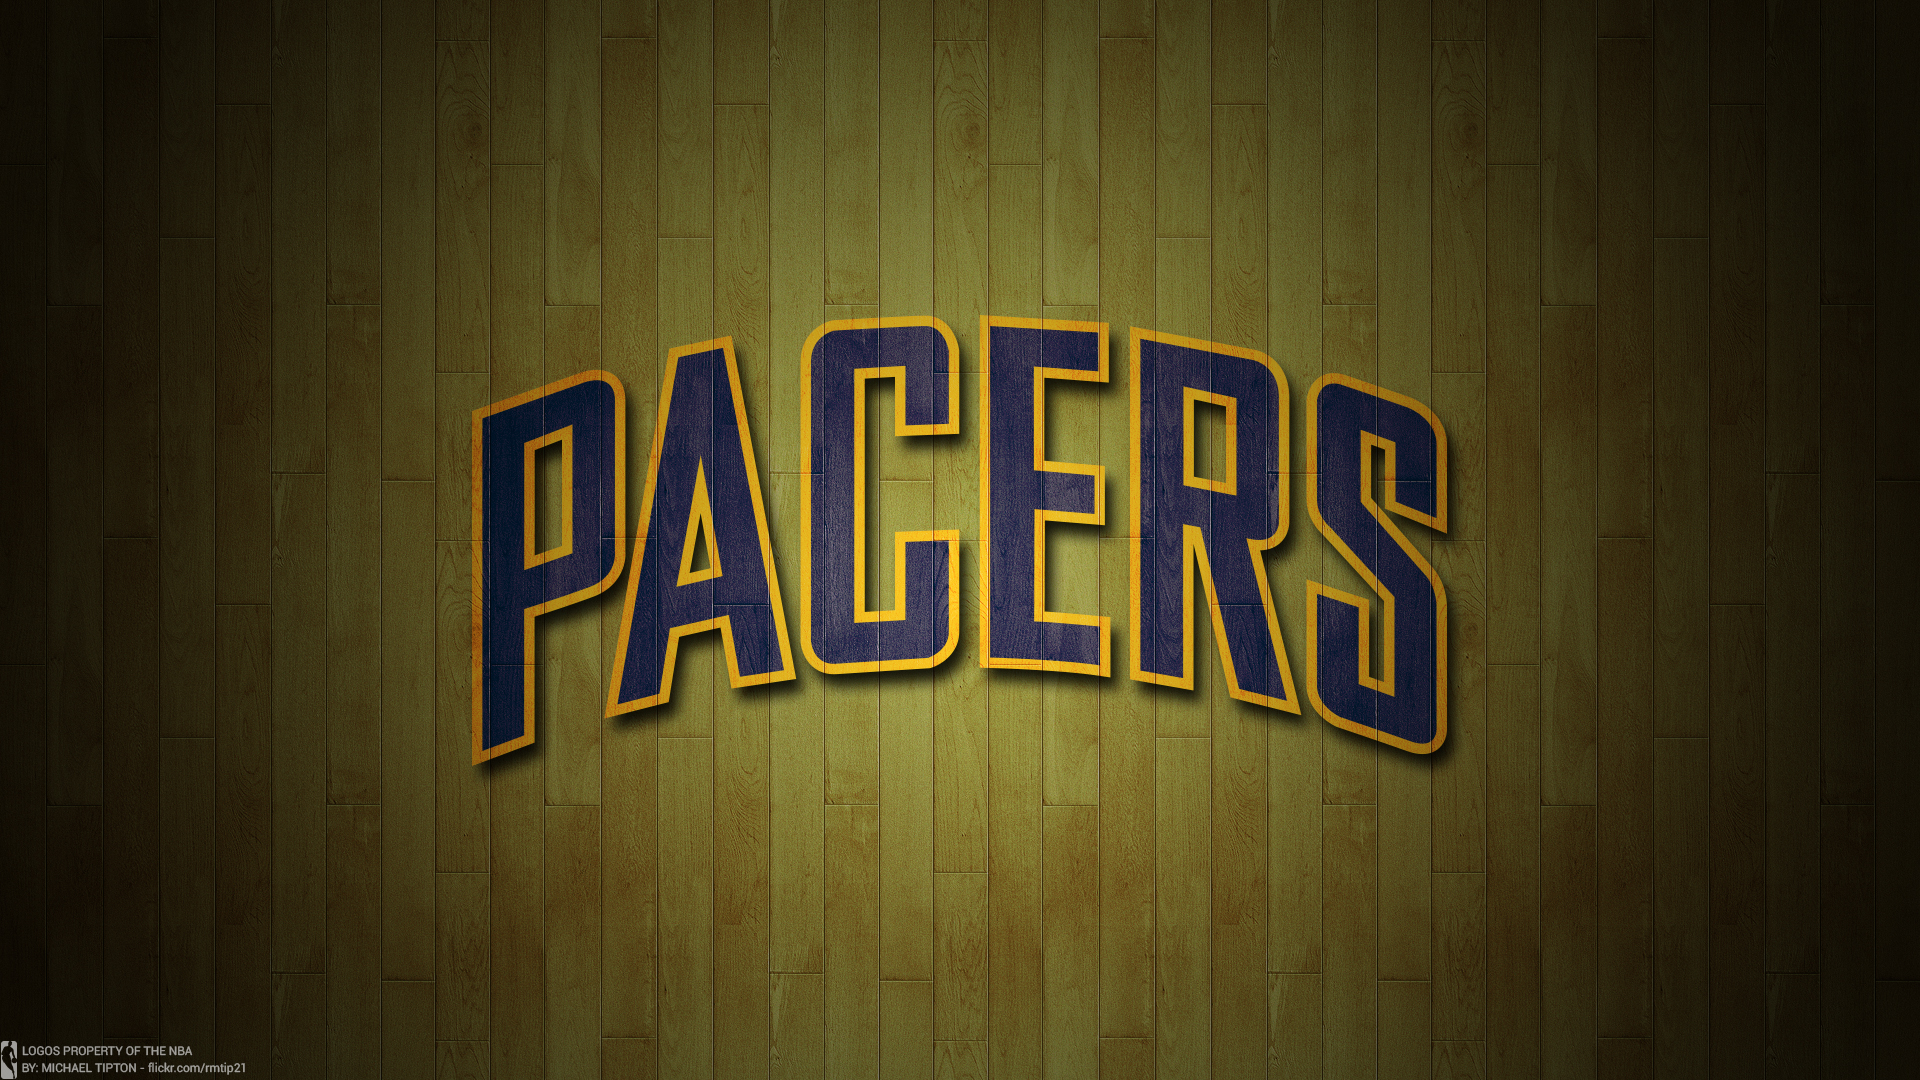 INDIANA PACERS nba basketball 12 wallpaper background 1920x1080